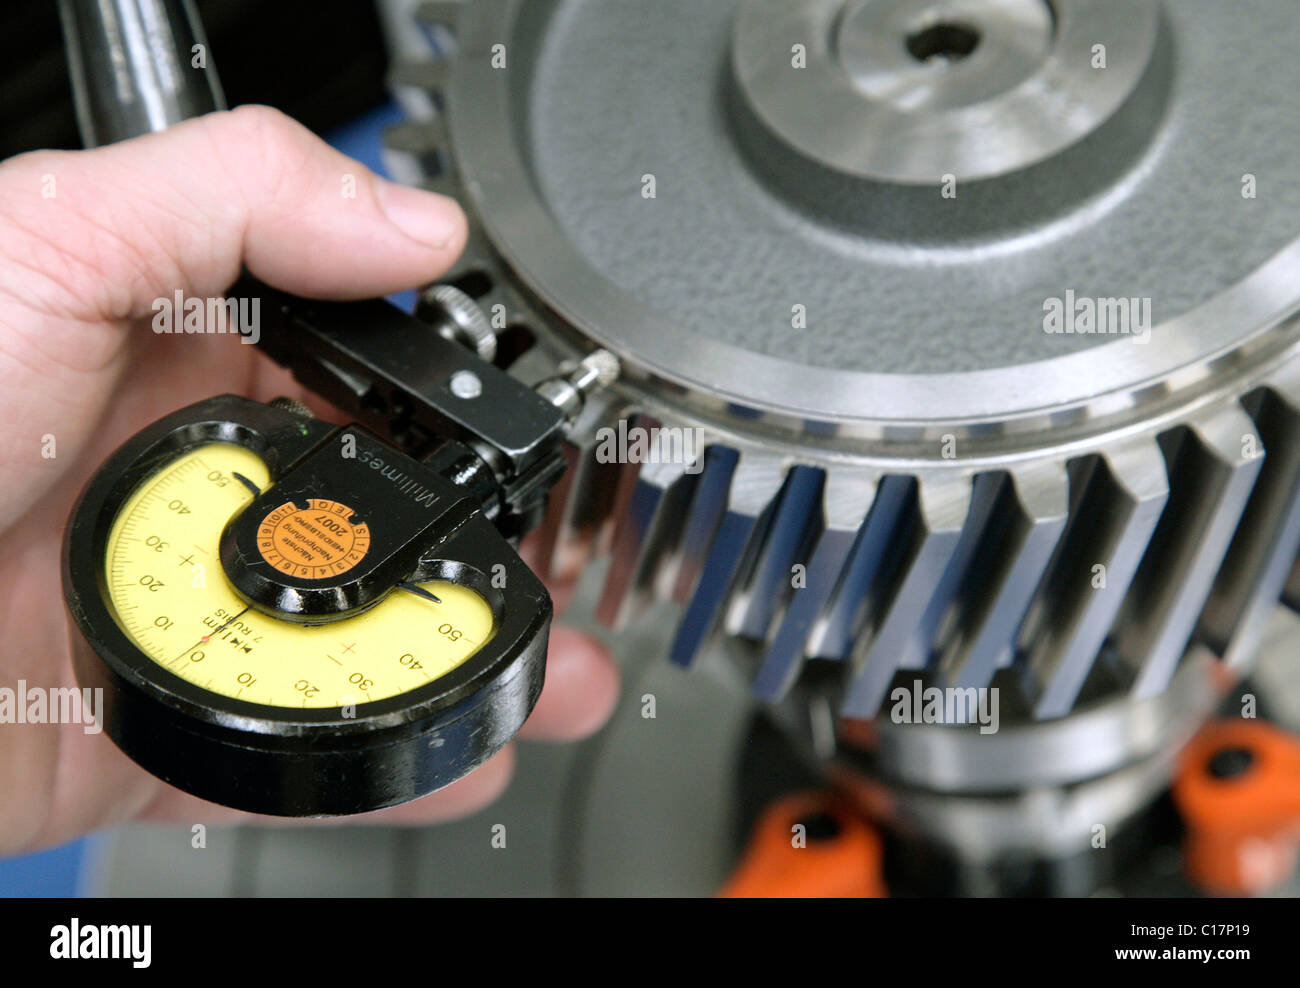 An employee of the Heidelberger Druckmaschinen AG checking the axial and radial runout of a gear with a dial gauge, - Stock Image